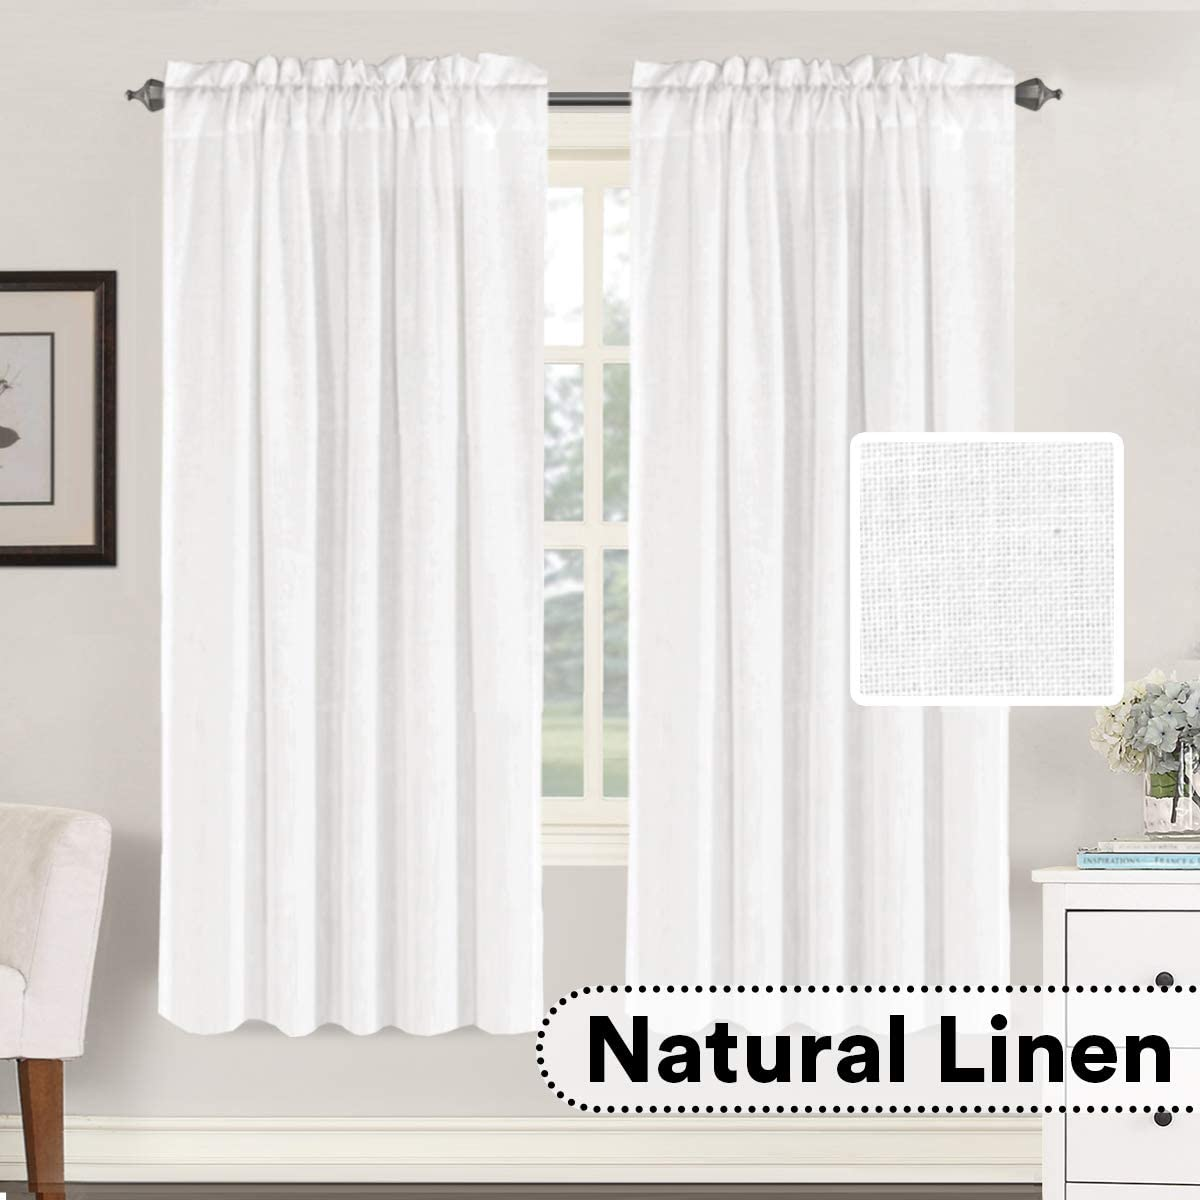 2 Pack, 52 by 45 Inch, Natural Rod Pocket H.VERSAILTEX Light Filtering Linen Textured Curtains for Living Room Window Treatment Natural /& Durable Privacy Added Draperies//Drapes//Panels//Treatment